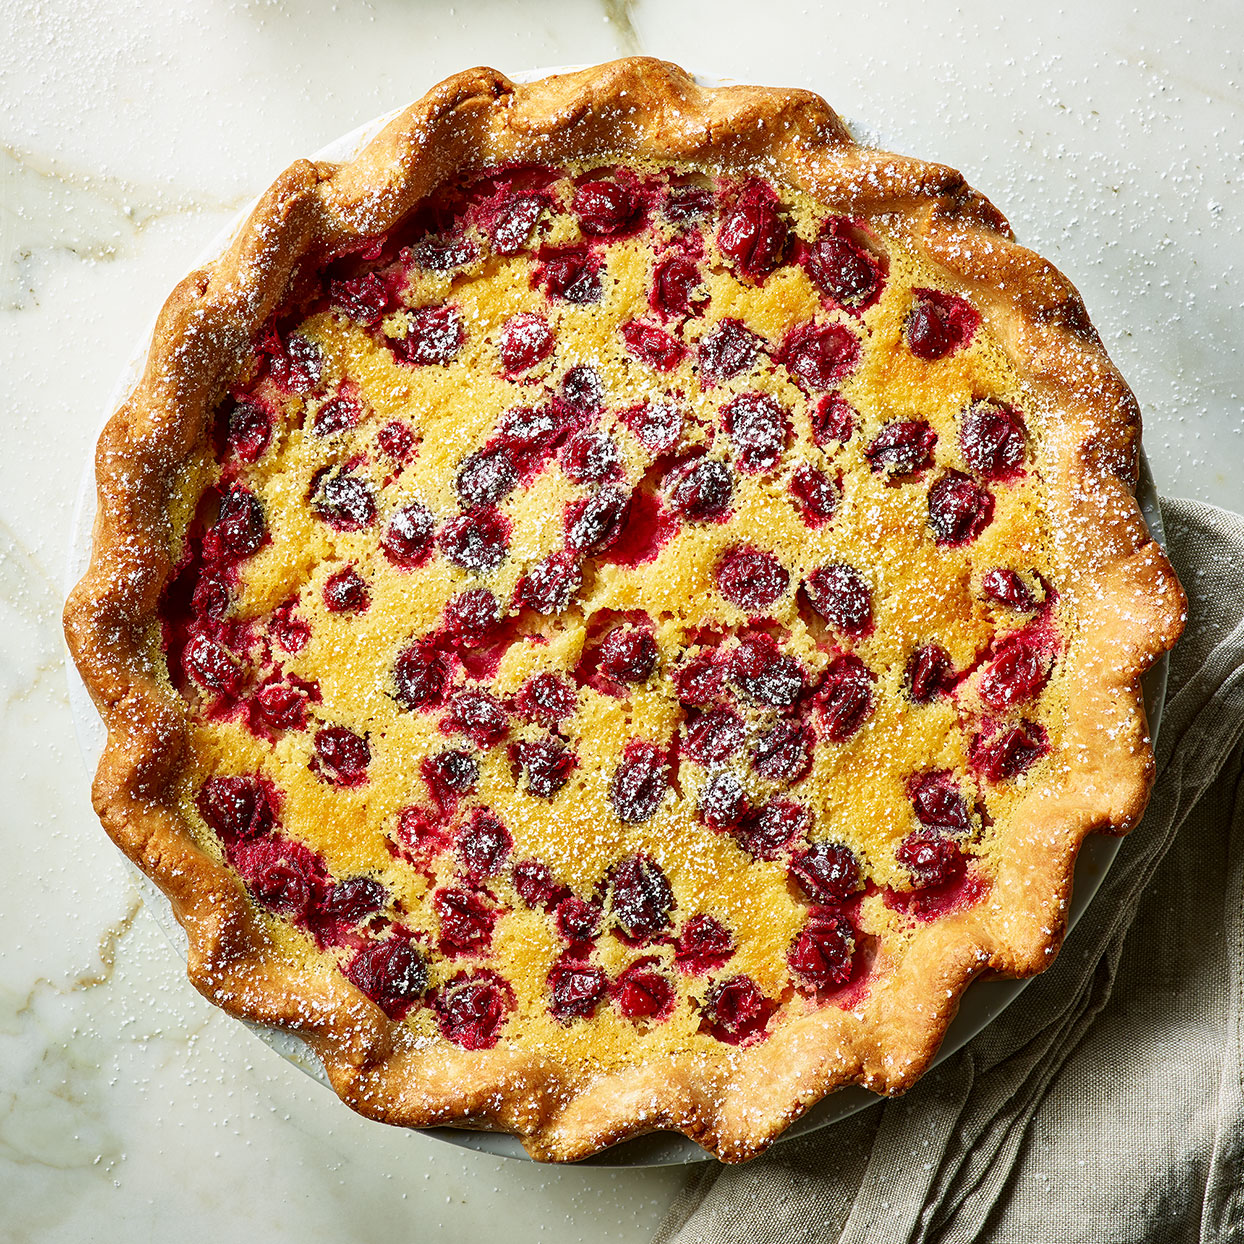 This custard filling is what takes this buttermilk pie recipe to the next level. It tastes like a panna cotta with a bit of attitude from the tang of the buttermilk and a generous sprinkling of cranberries on top.